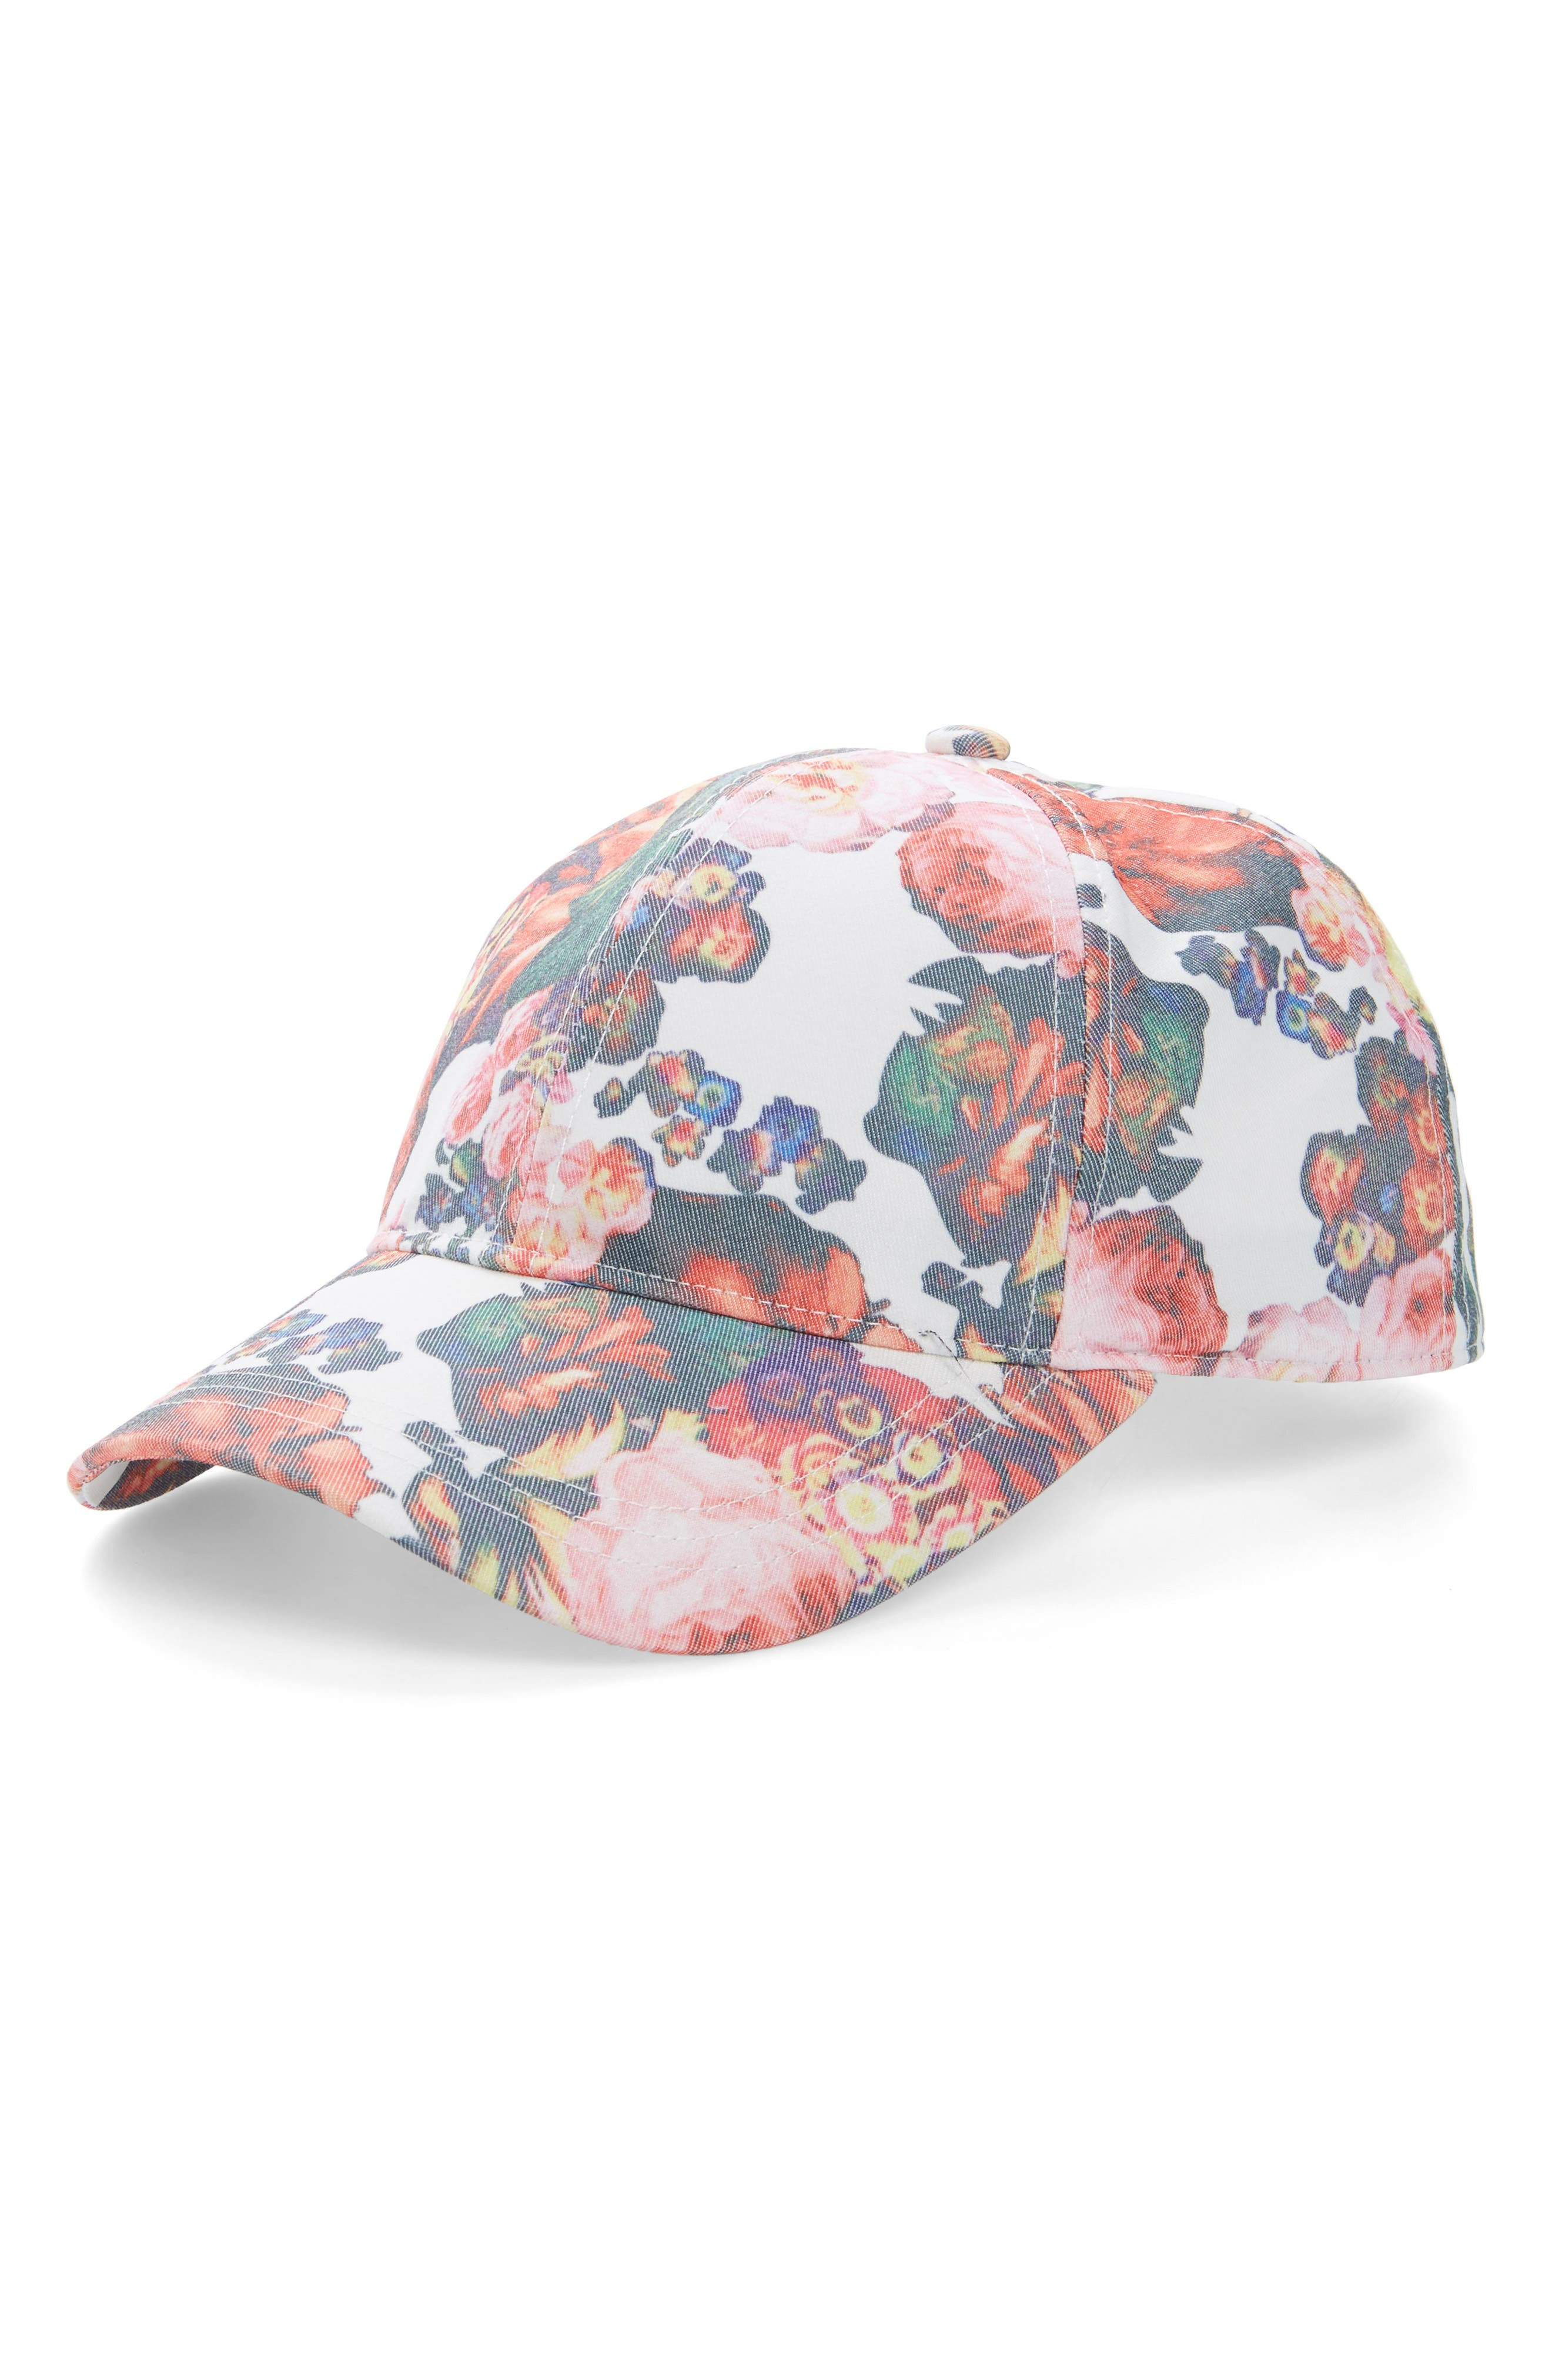 August Hat Caps Off Floral Baseball Cap